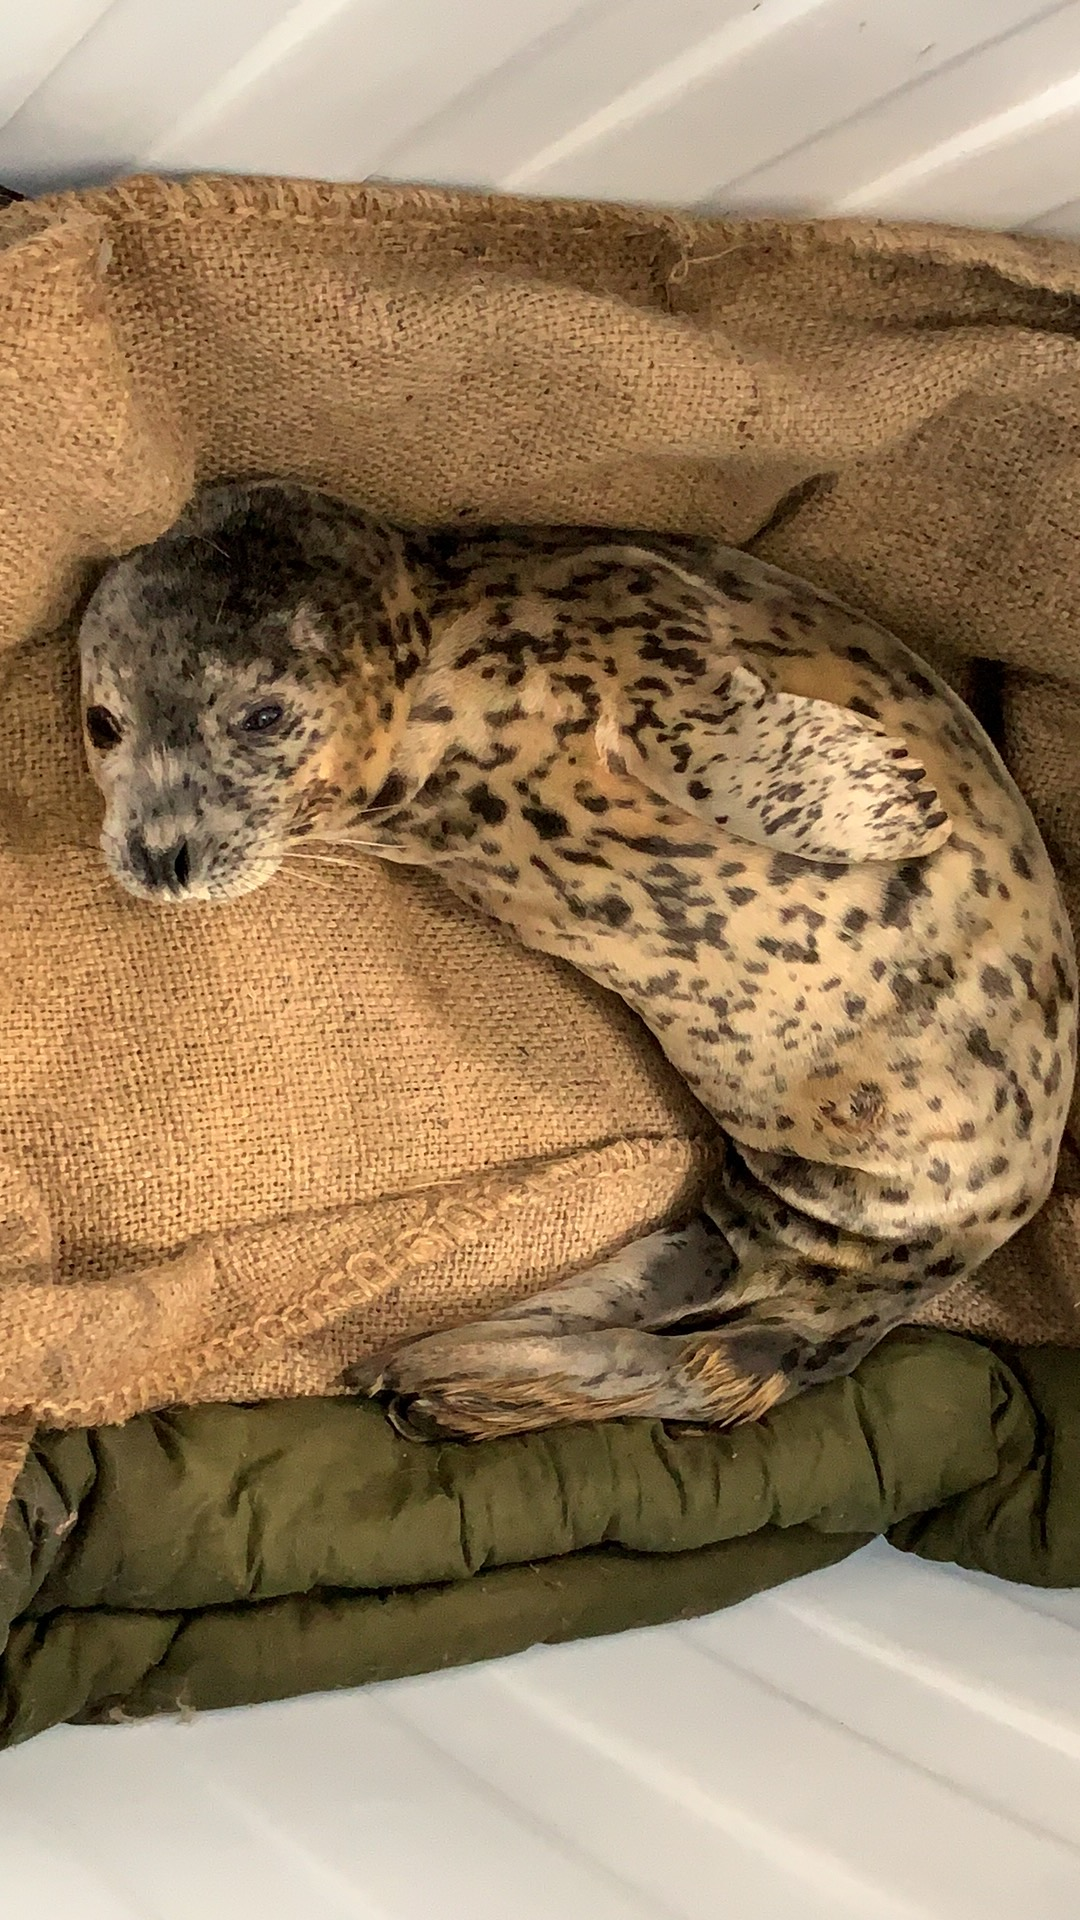 Seals saved from poachers released back to sea